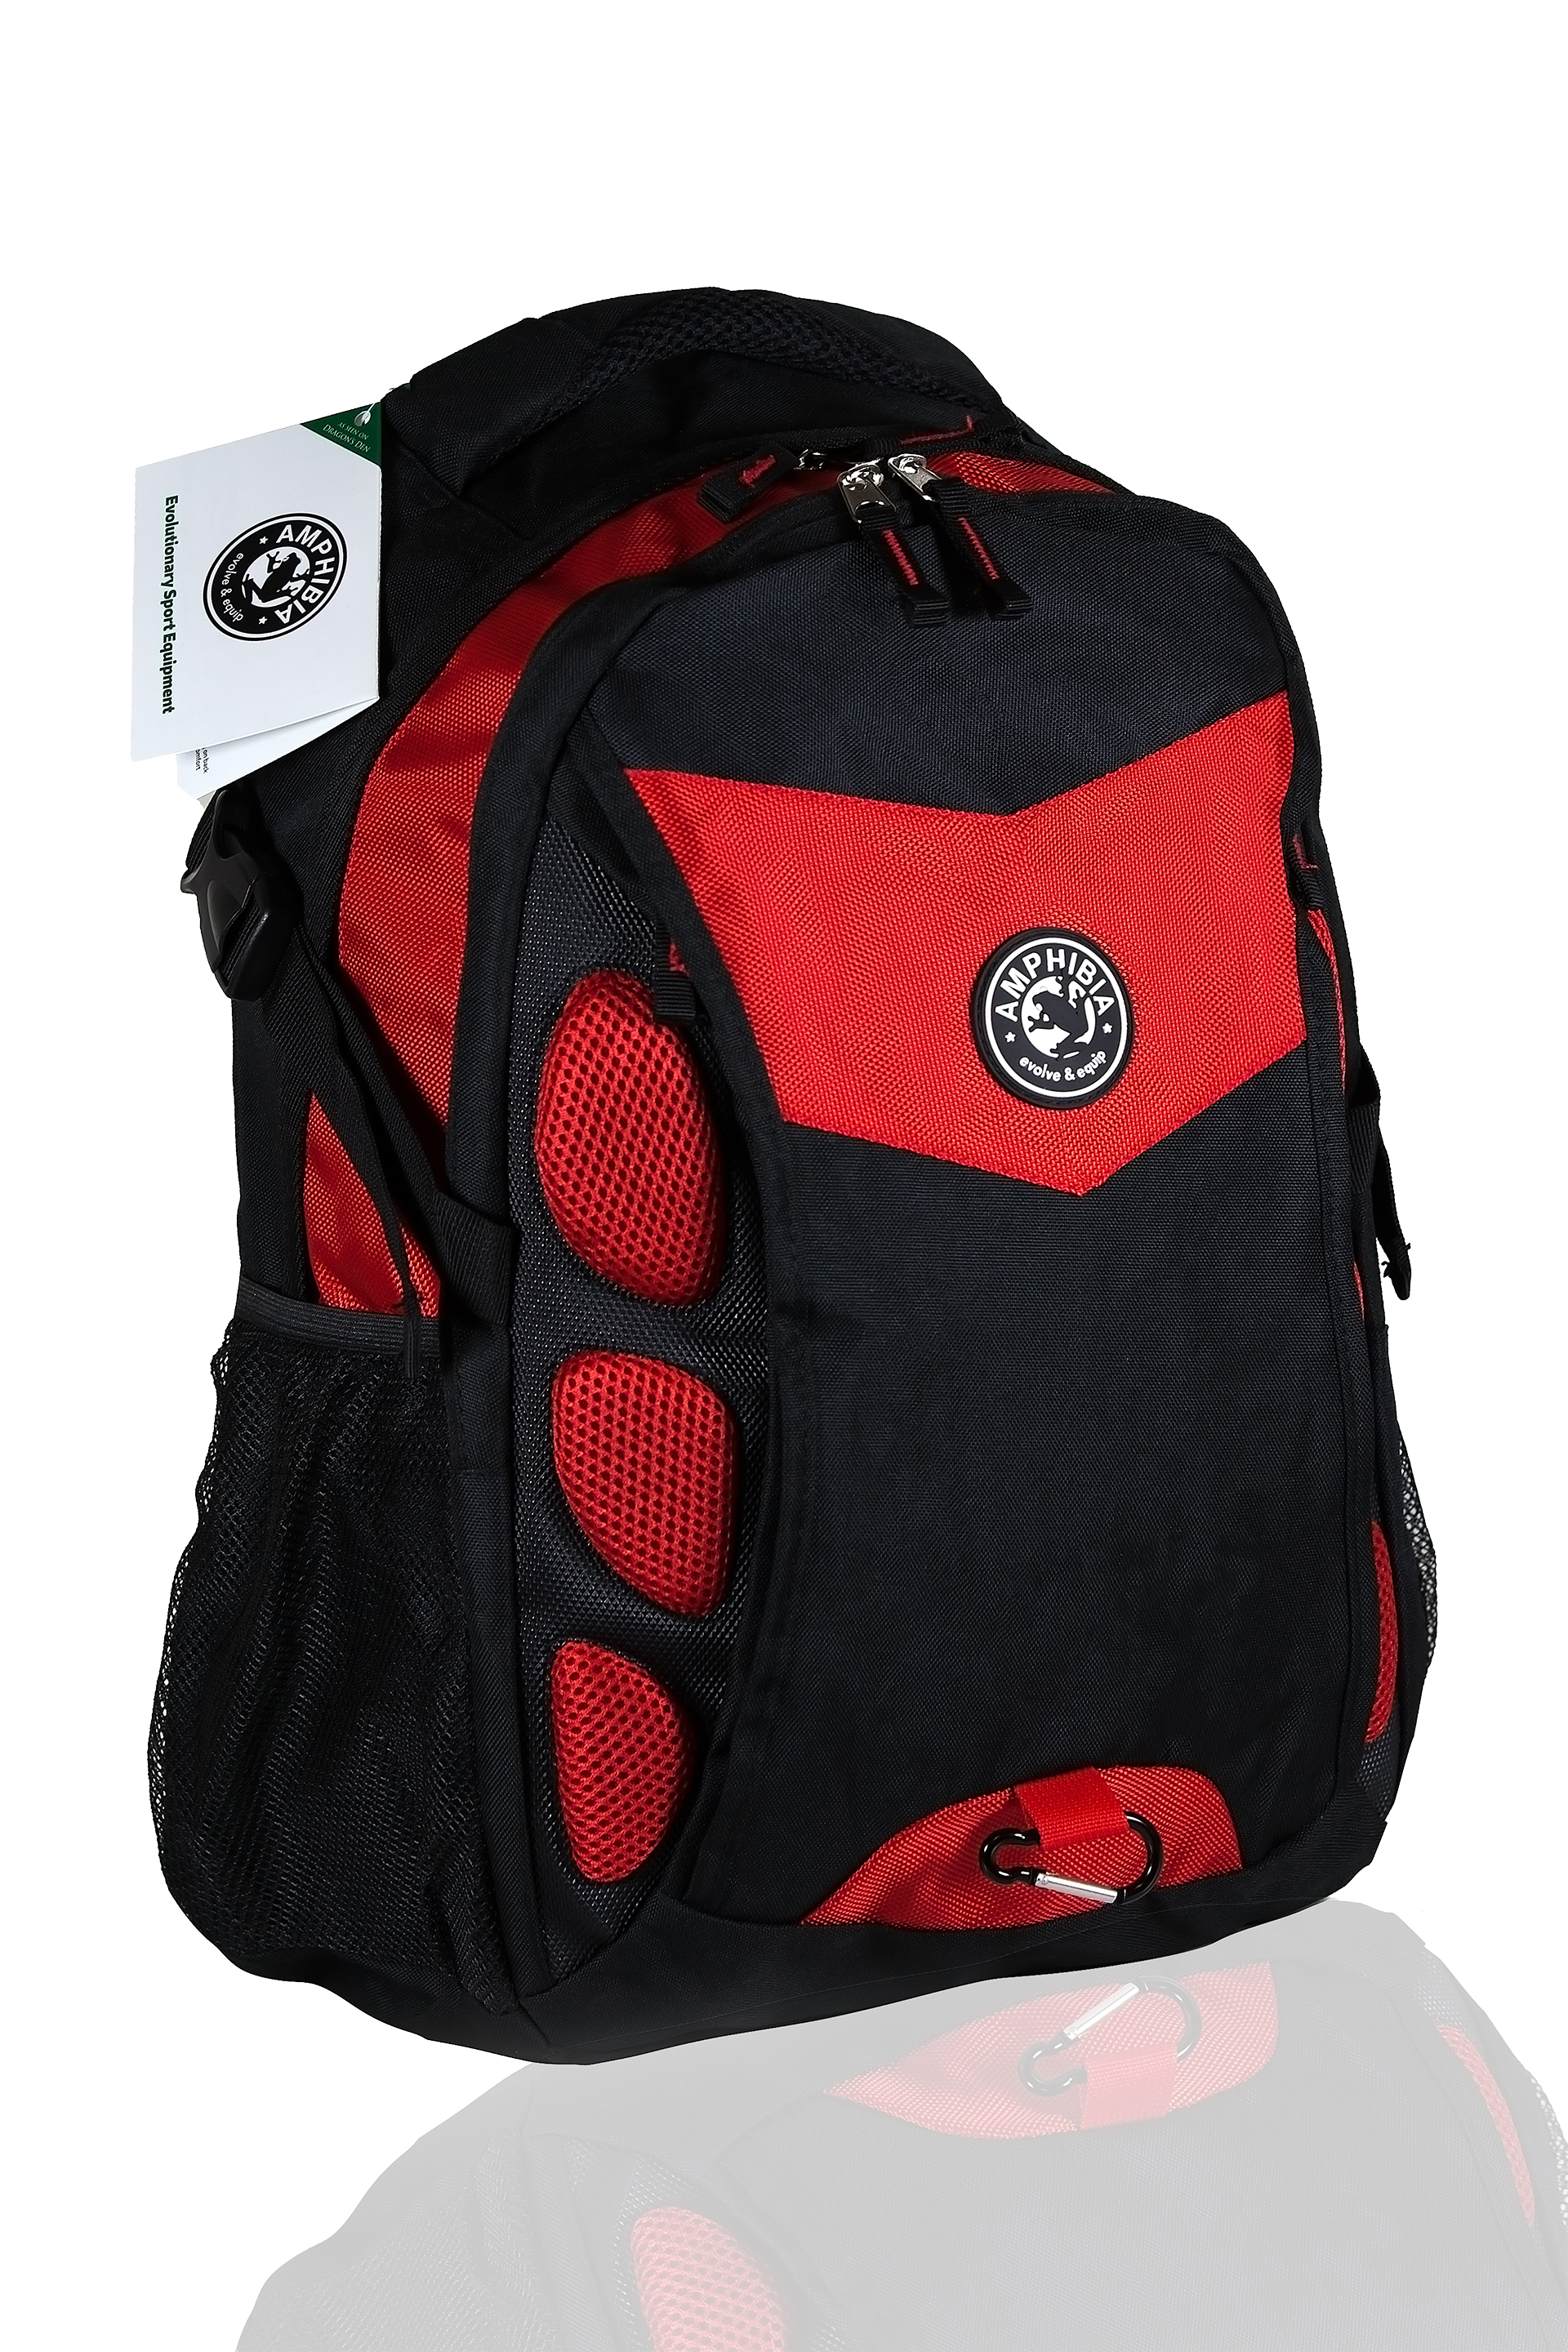 Amphibia Sports Gear Backpack Xtra